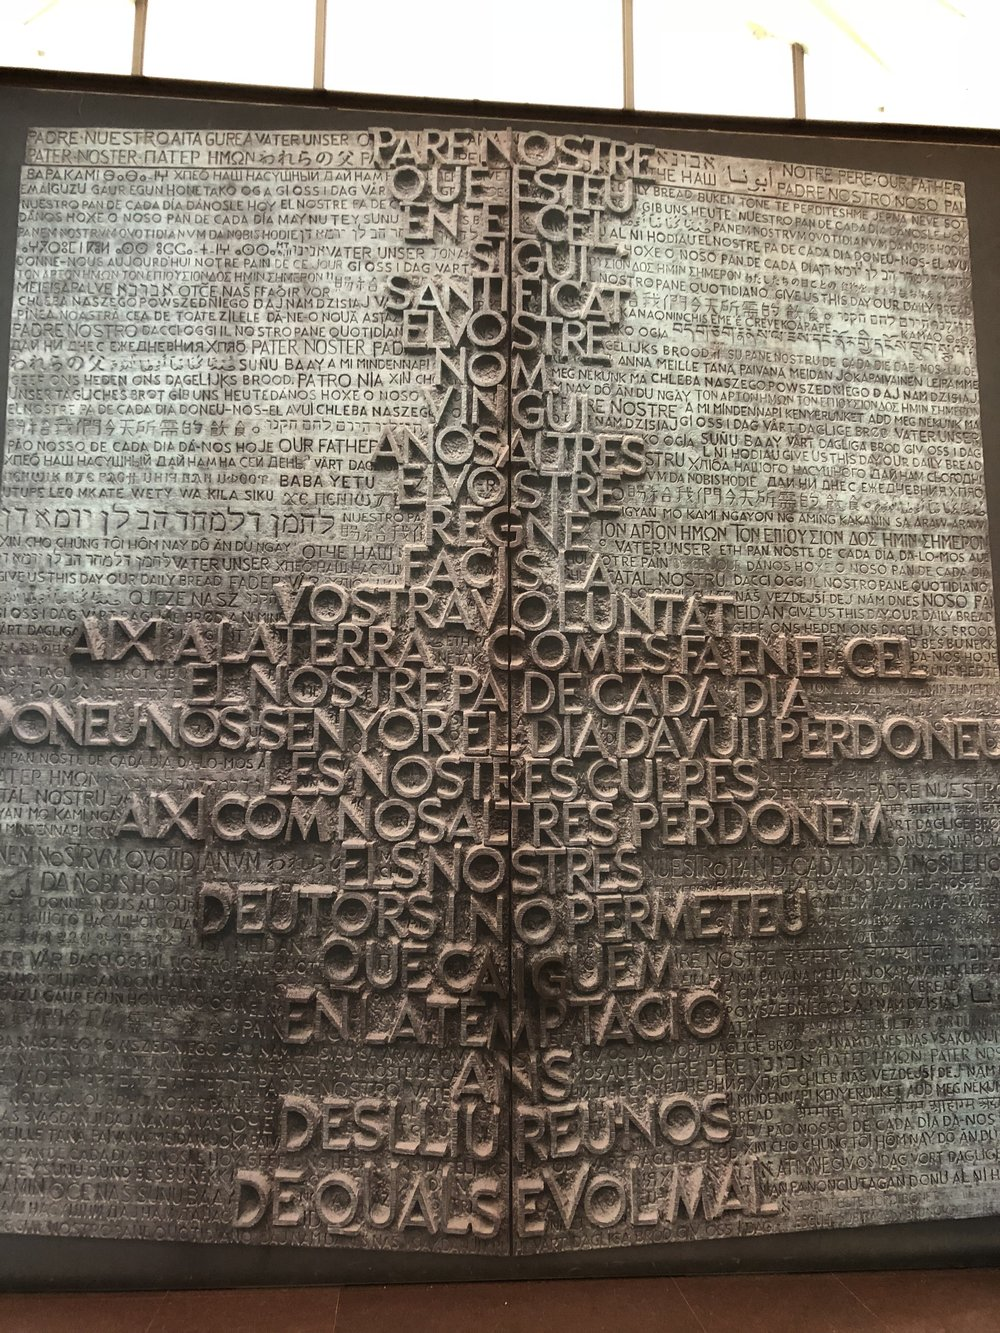 The Lord's Prayer in Catalan inside of the Sagrada Familia